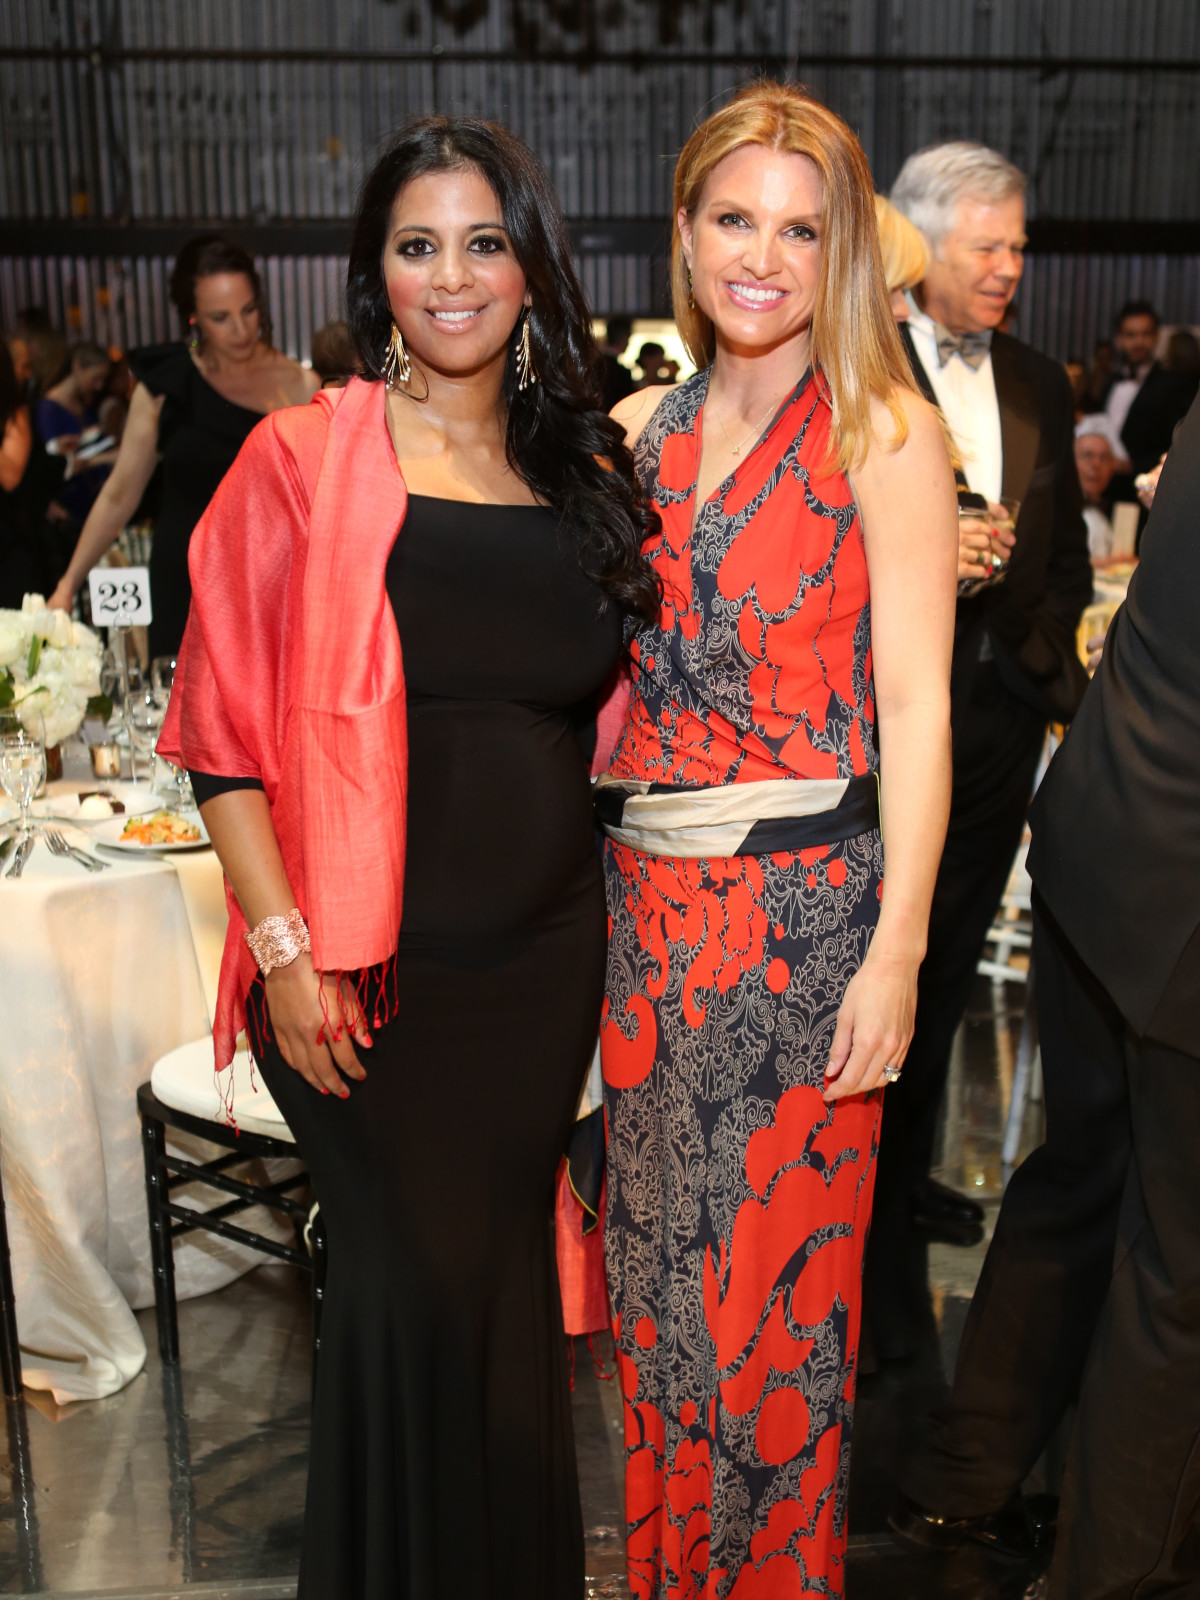 Mercury Gala April 2016, Elizabeth Abraham Colombowala, Lindley Arnoldy